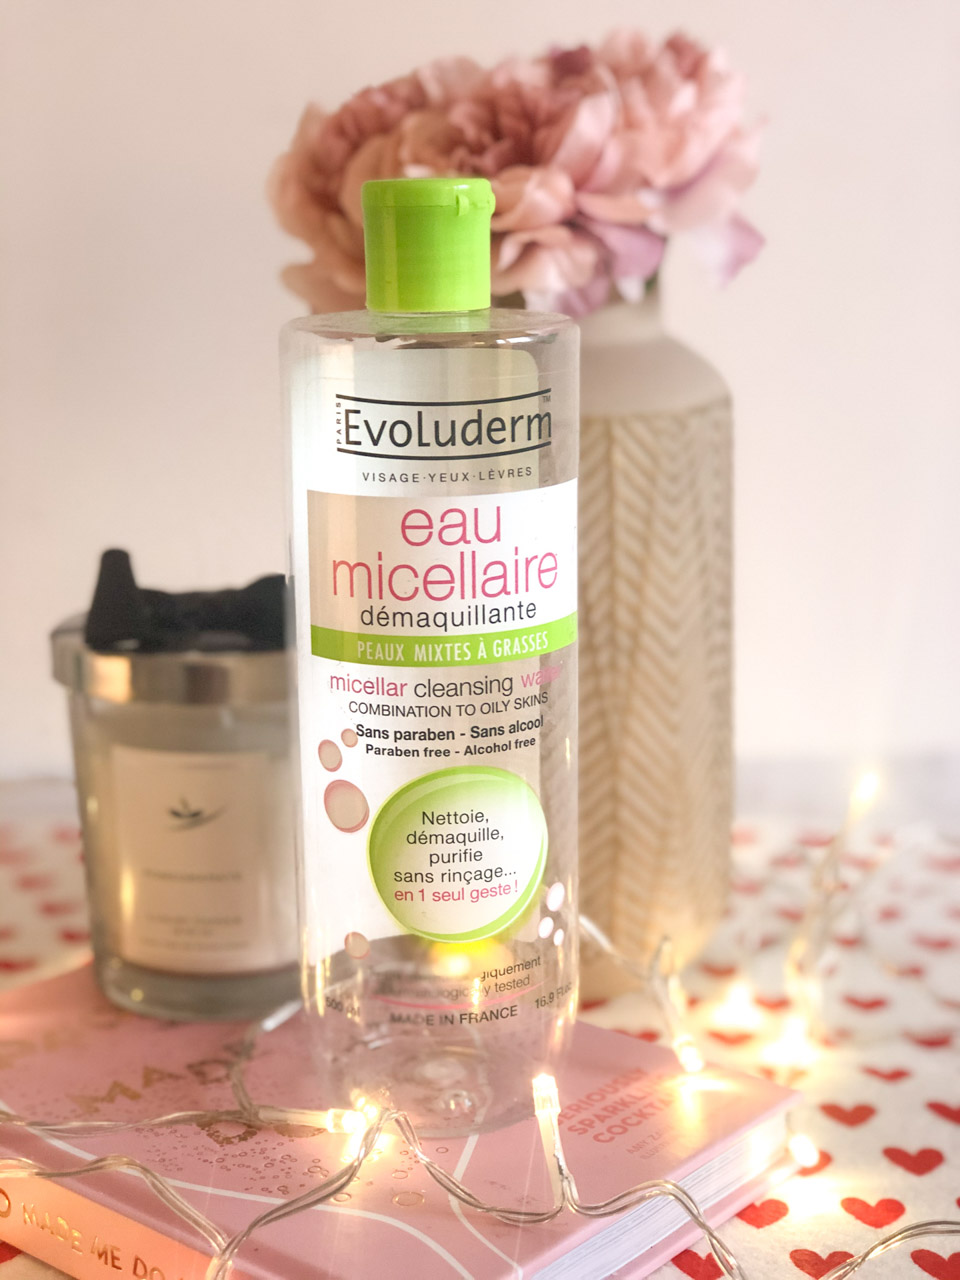 A bottle of Evoluderm micellar water standing on a desk